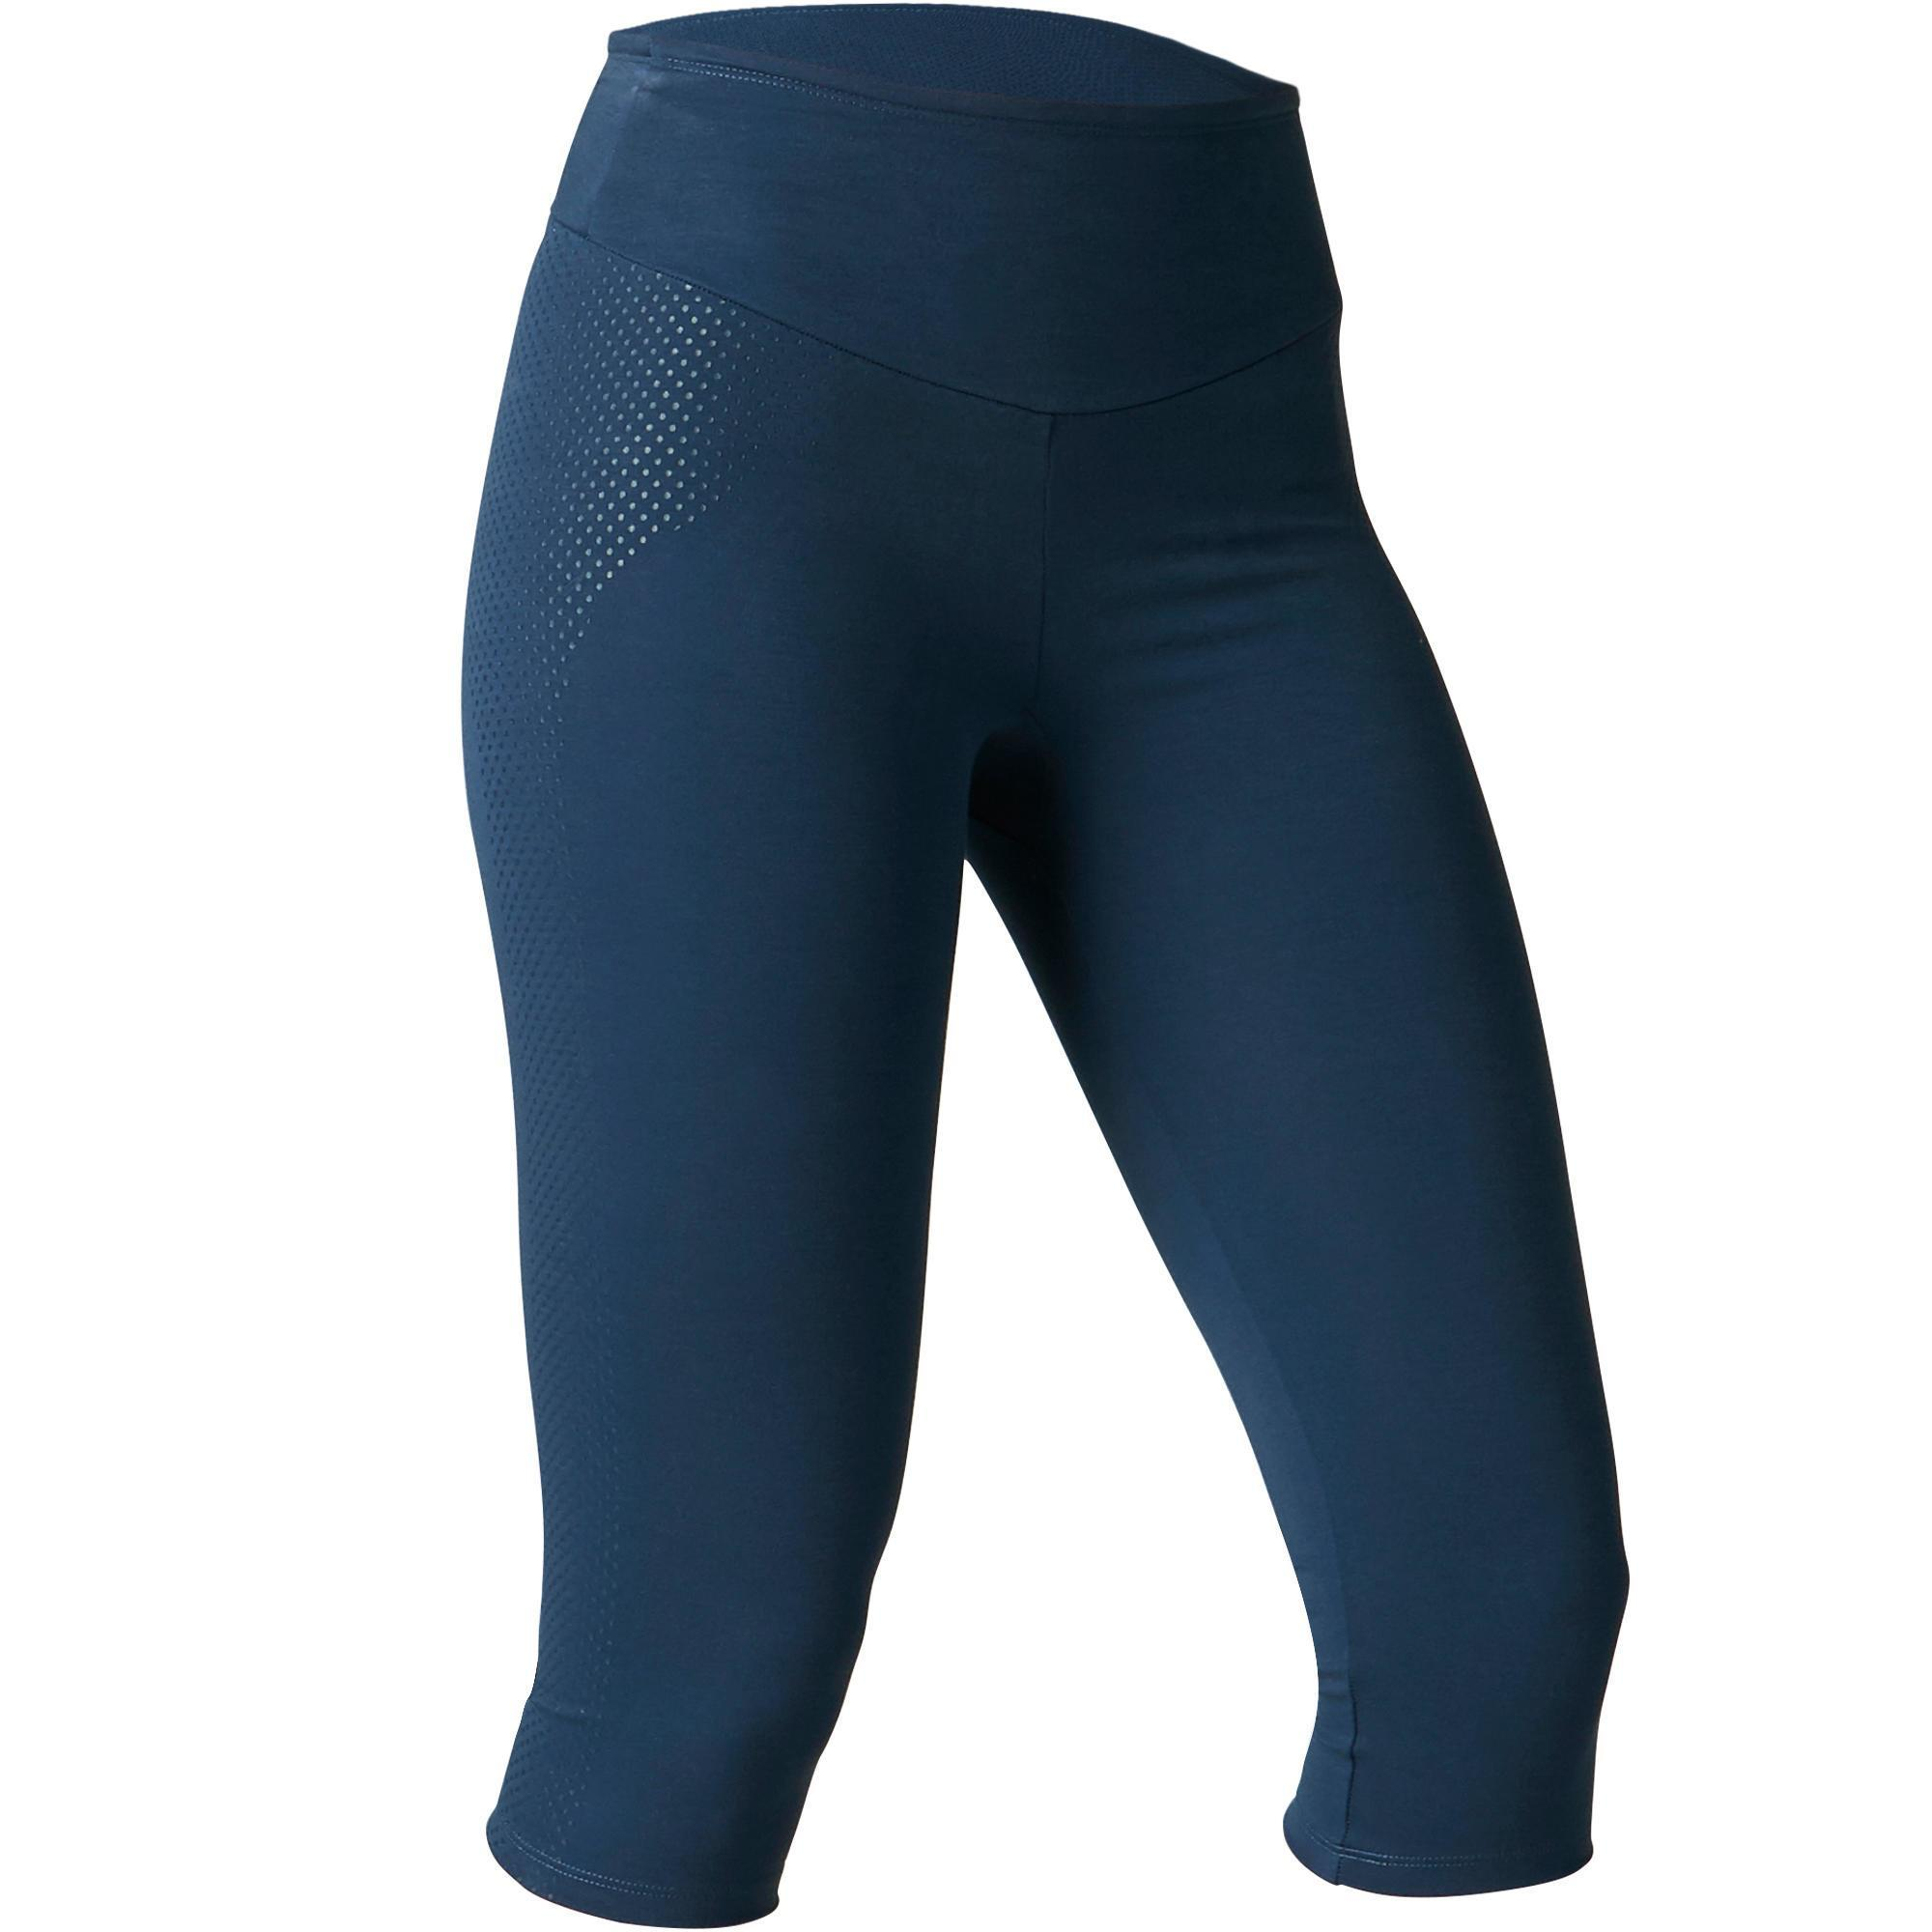 Domyos Dameskuitbroek 900 voor gym, stretching en pilates slim fit donkerblauw